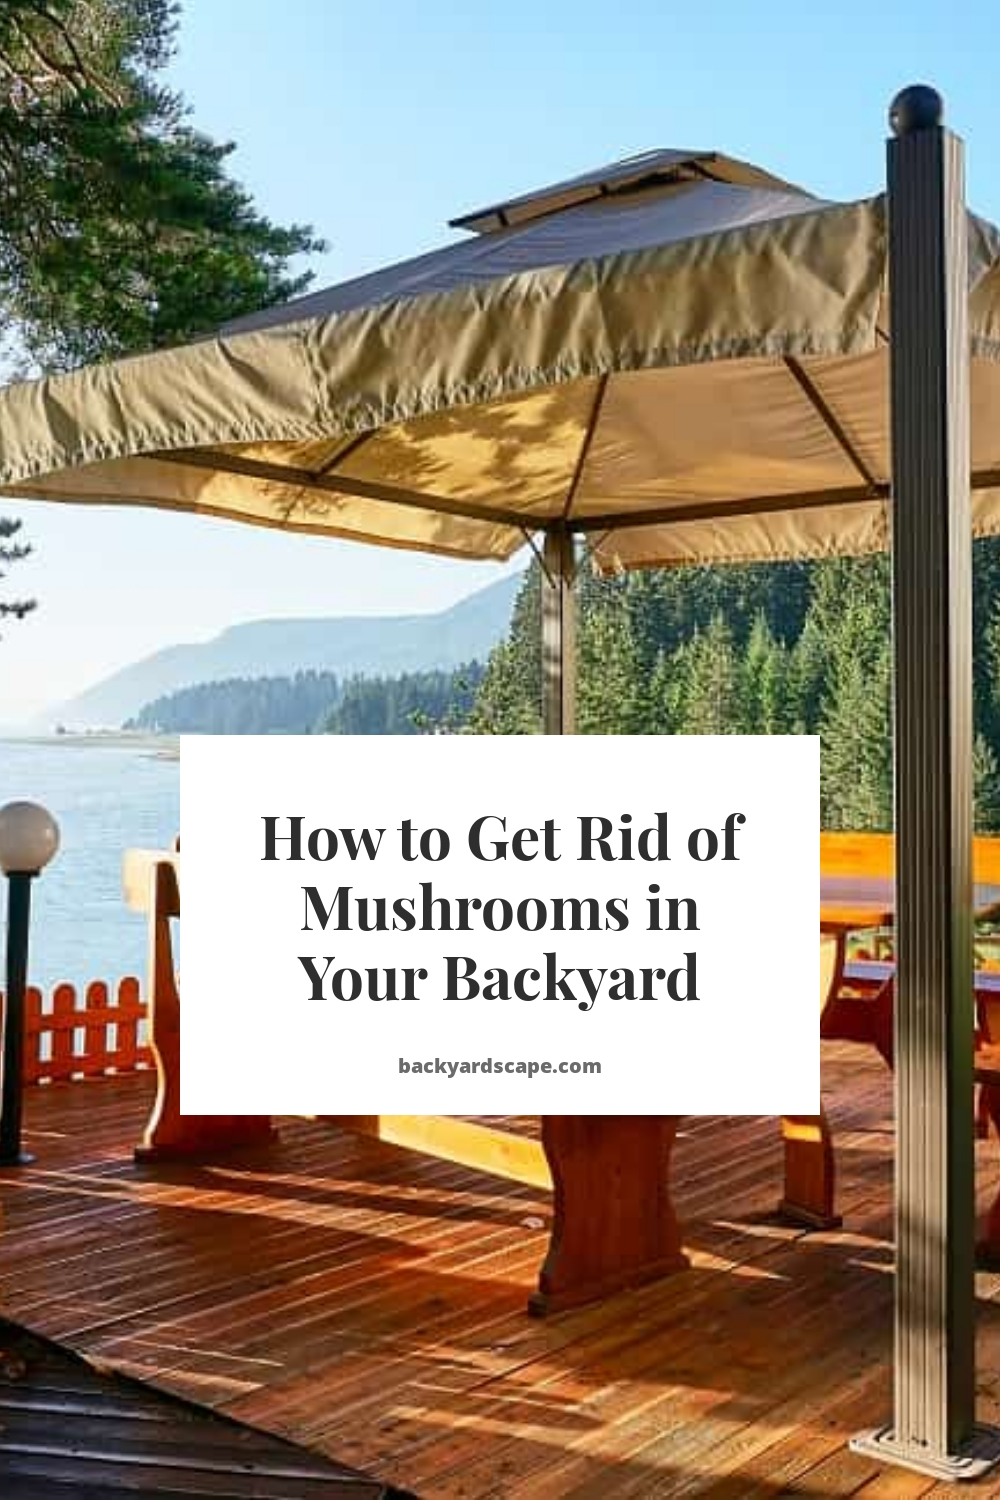 How to Get Rid of Mushrooms in Your Backyard